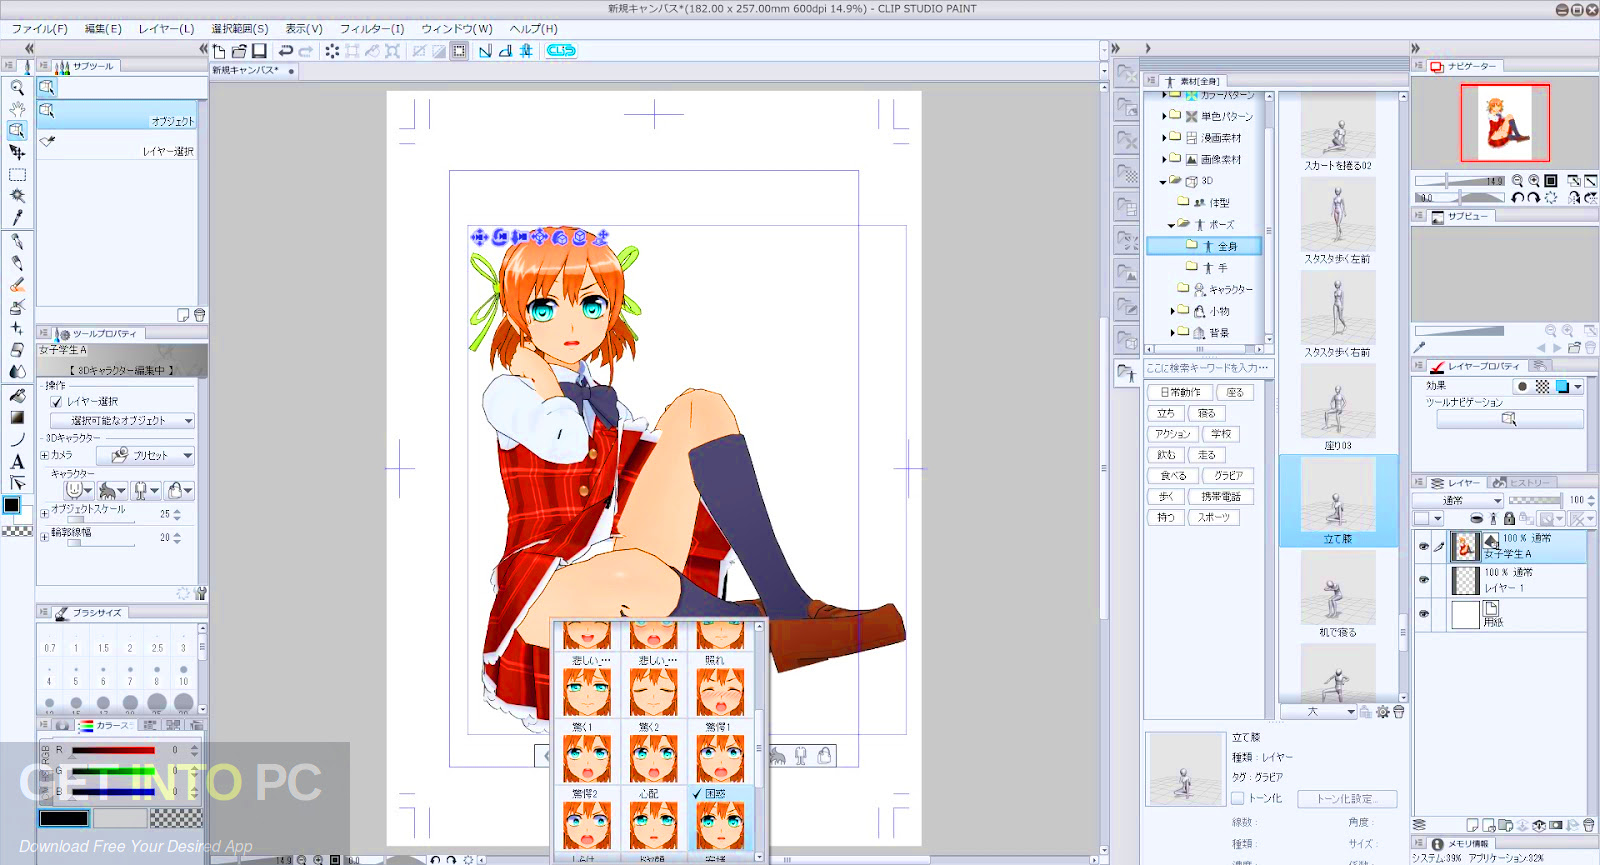 download crack clip studio paint 1.5